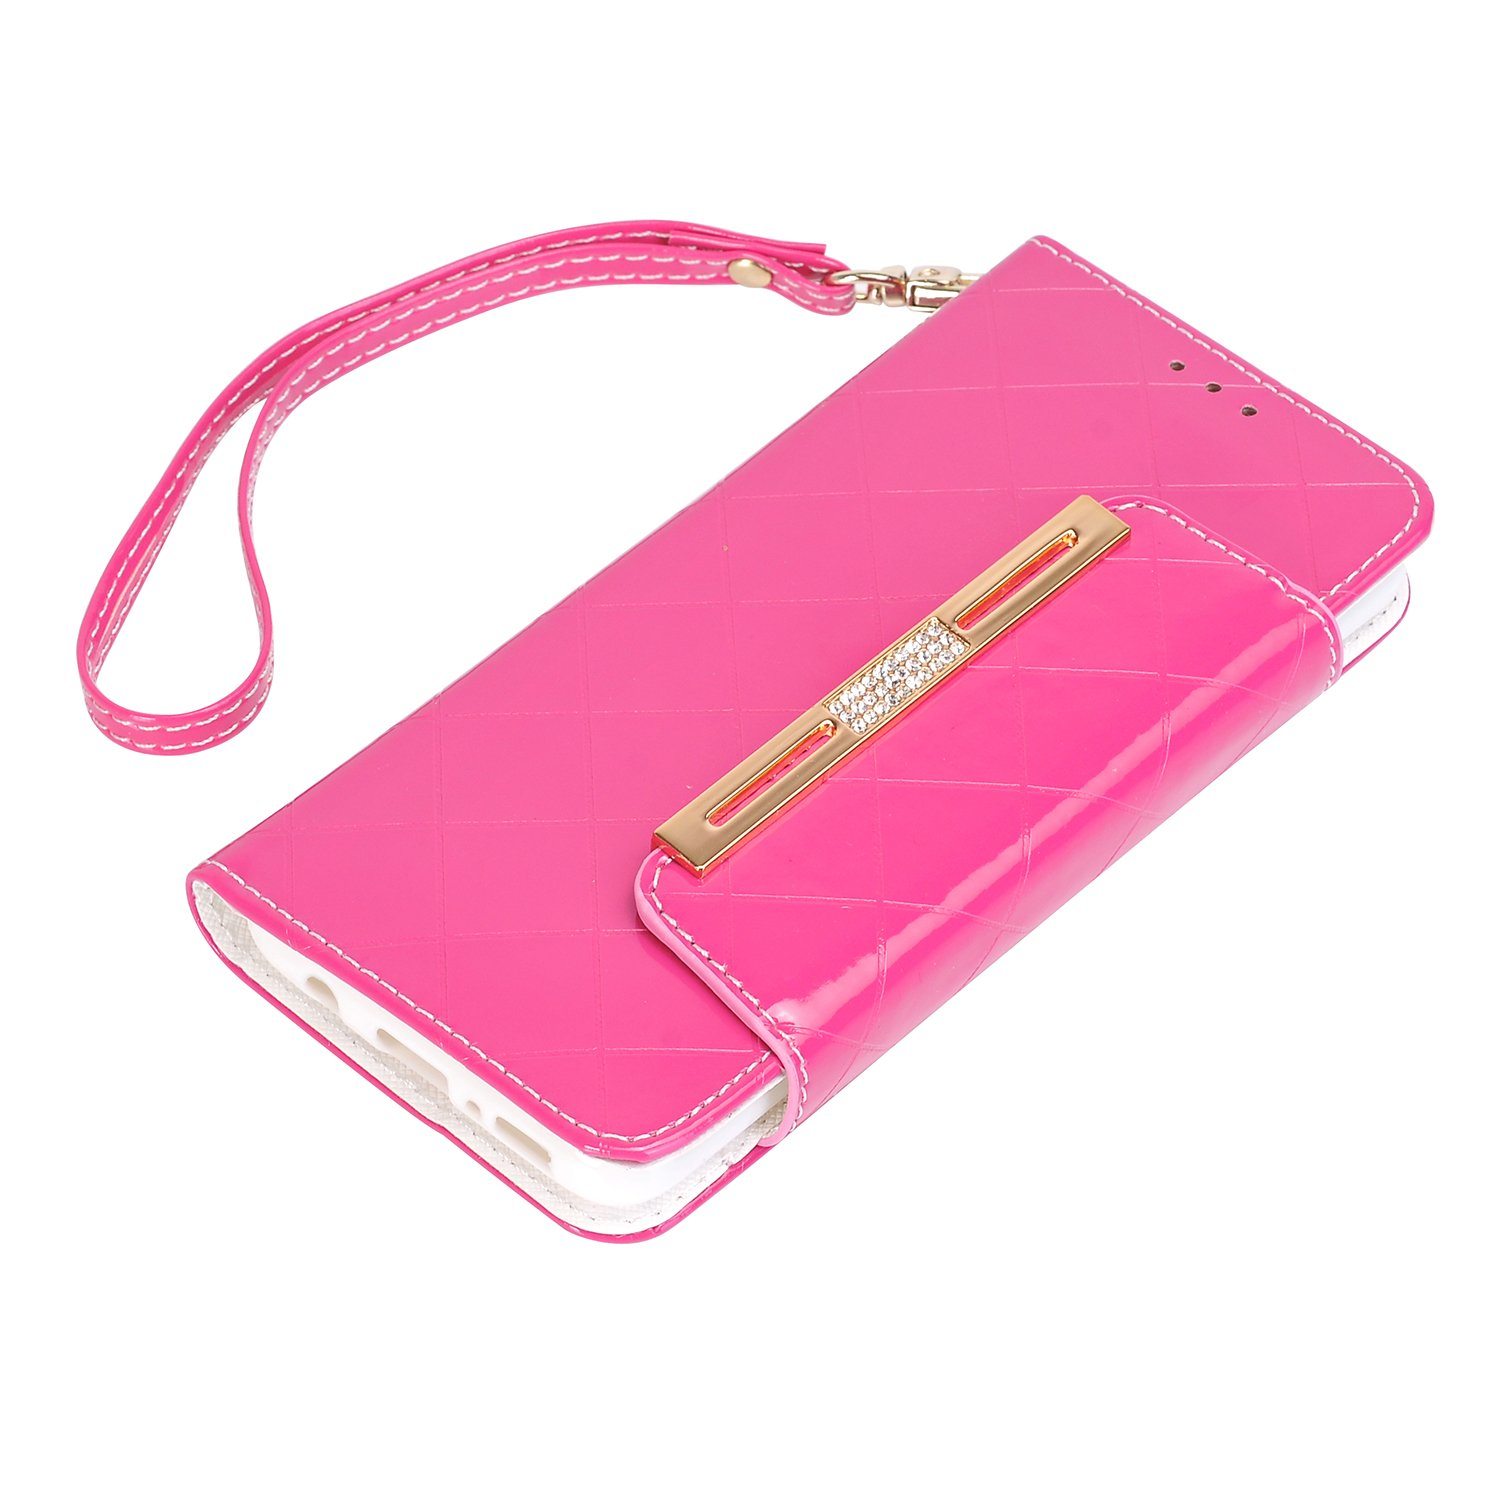 elecfan Case Wallet Handbag with Strap for S8, Candy Color Lady Multi Envelope Wristlet Shiny Flip Cover with Cards Slots & Money Poacket for Samsung Galaxy S8 (Pink)